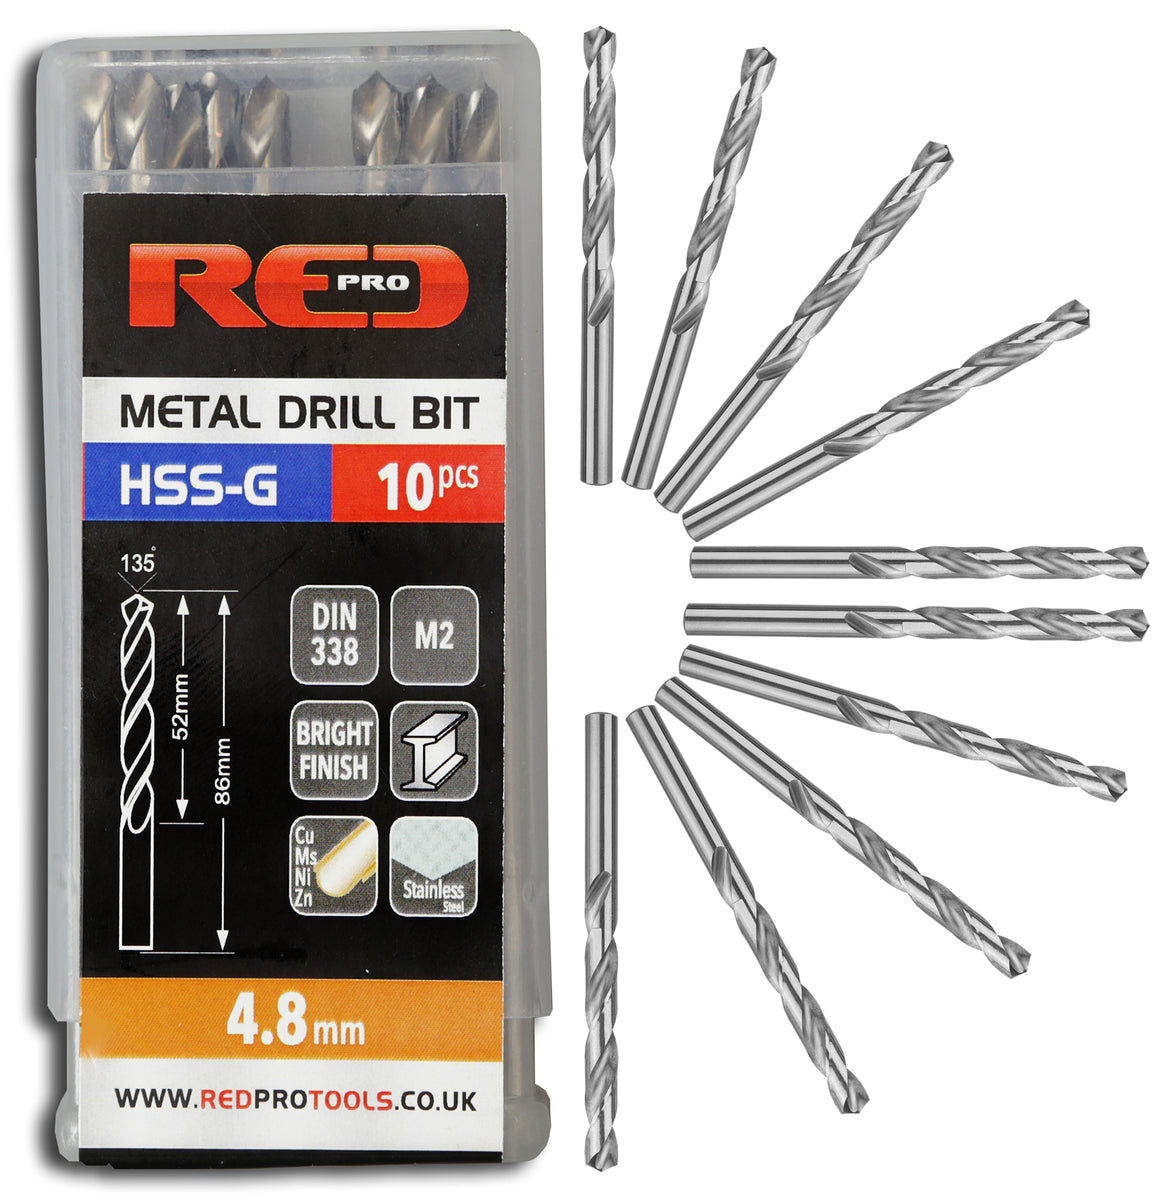 Red Pro Tools Metal Drill Bit HSS-G 4.8mm - 10 Pieces